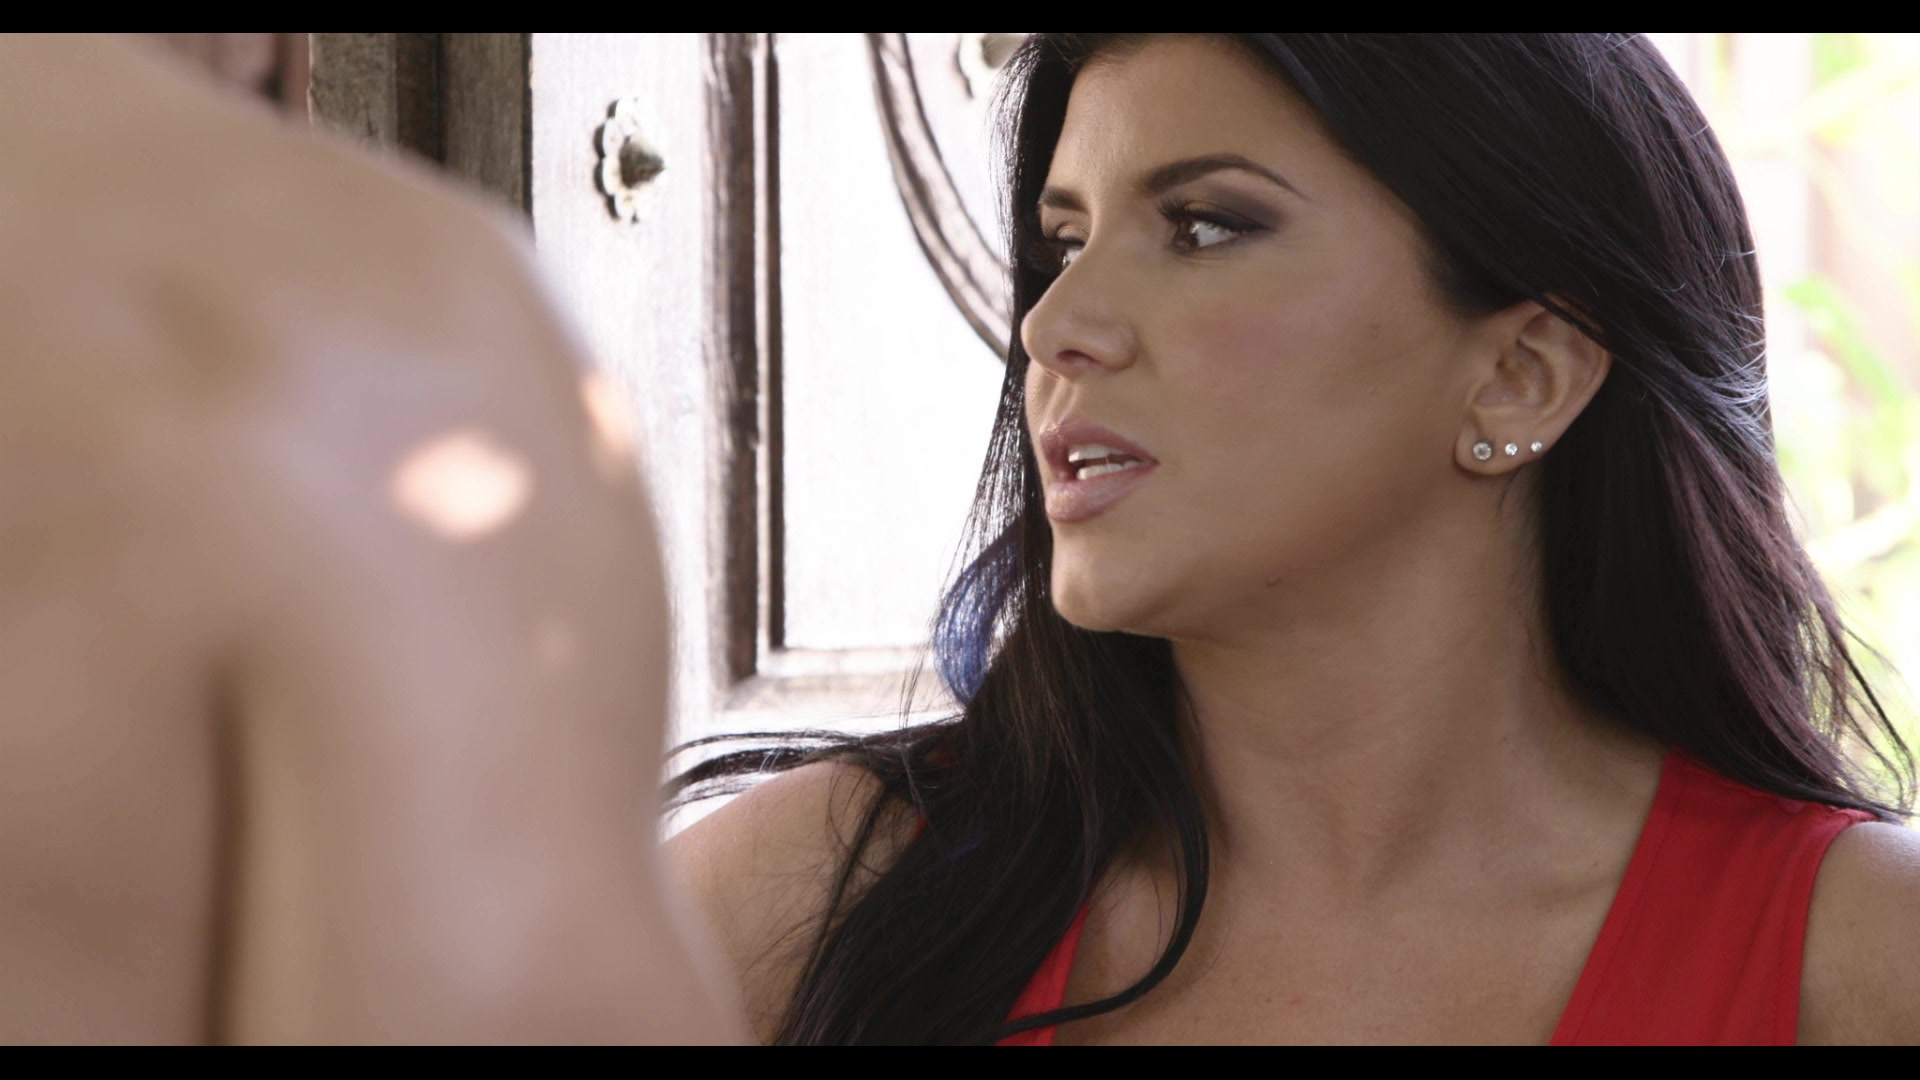 Scene with Ryan Driller and Jessa Rhodes - image 13 out of 20